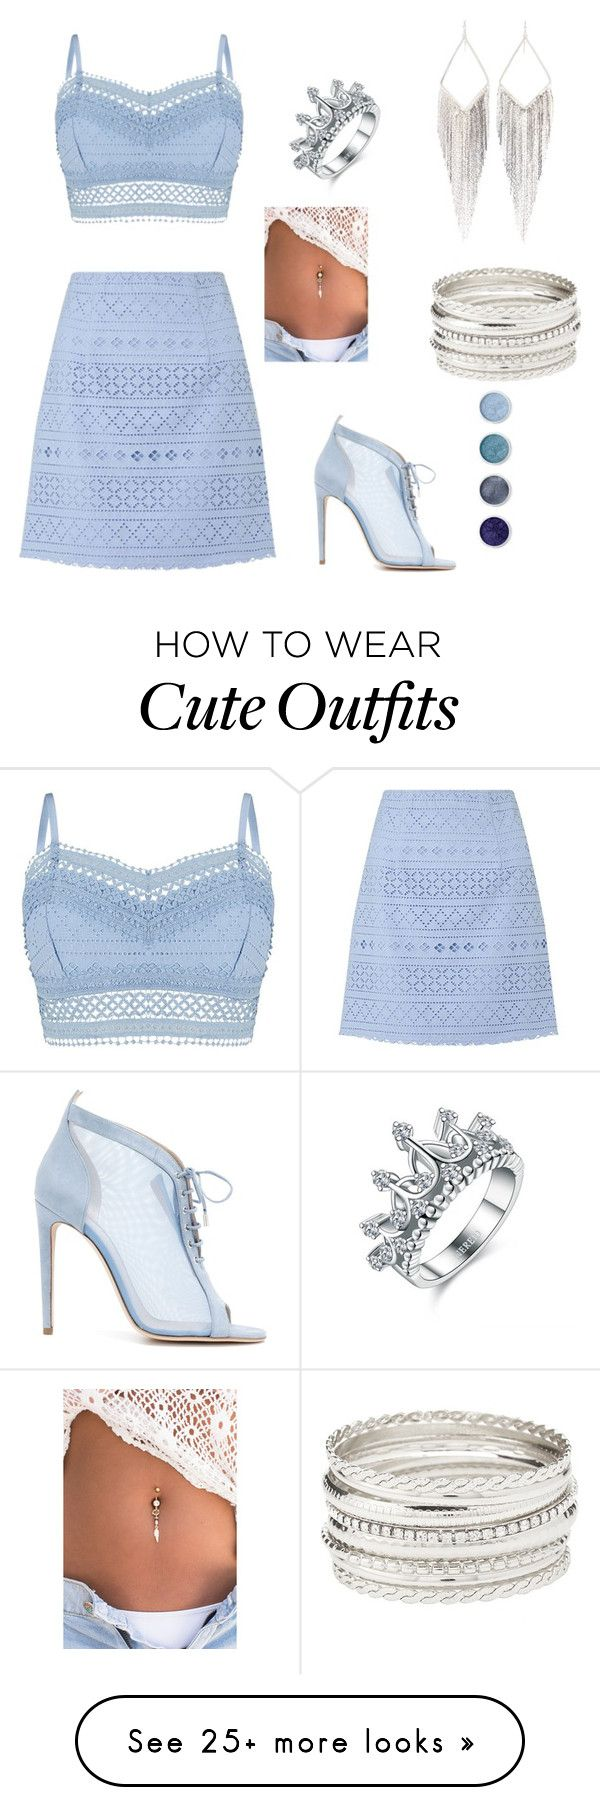 """""""Cute summer outfit"""" by mercy11 on Polyvore featuring Lipsy, Chloe Gosselin, Jules Smith, Charlotte Russe and Terre Mère"""